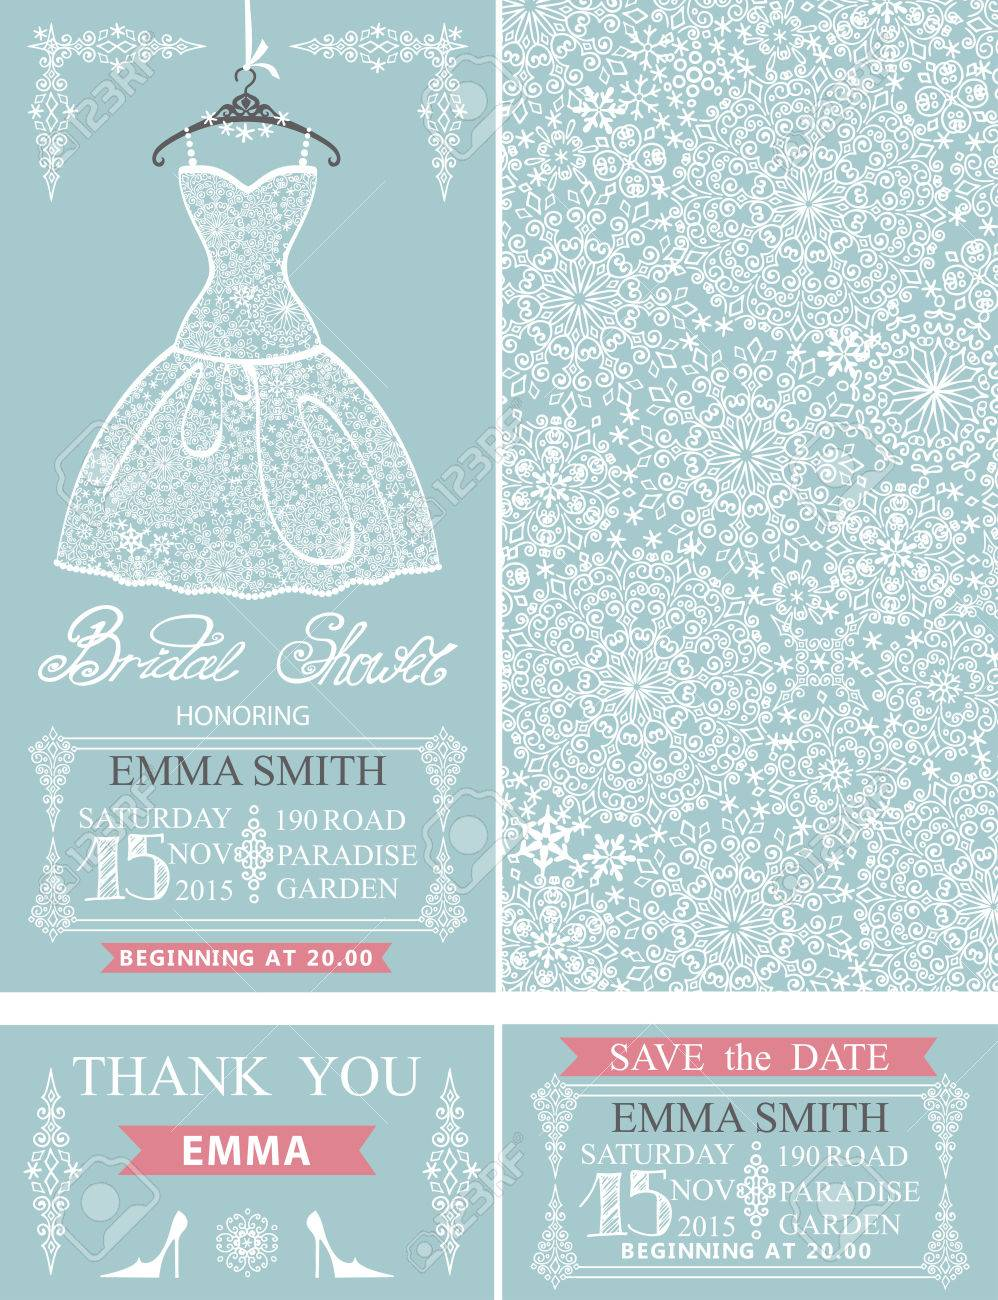 Bridal Shower Invitation Setbridal Wedding Lace Dresssnowflakes